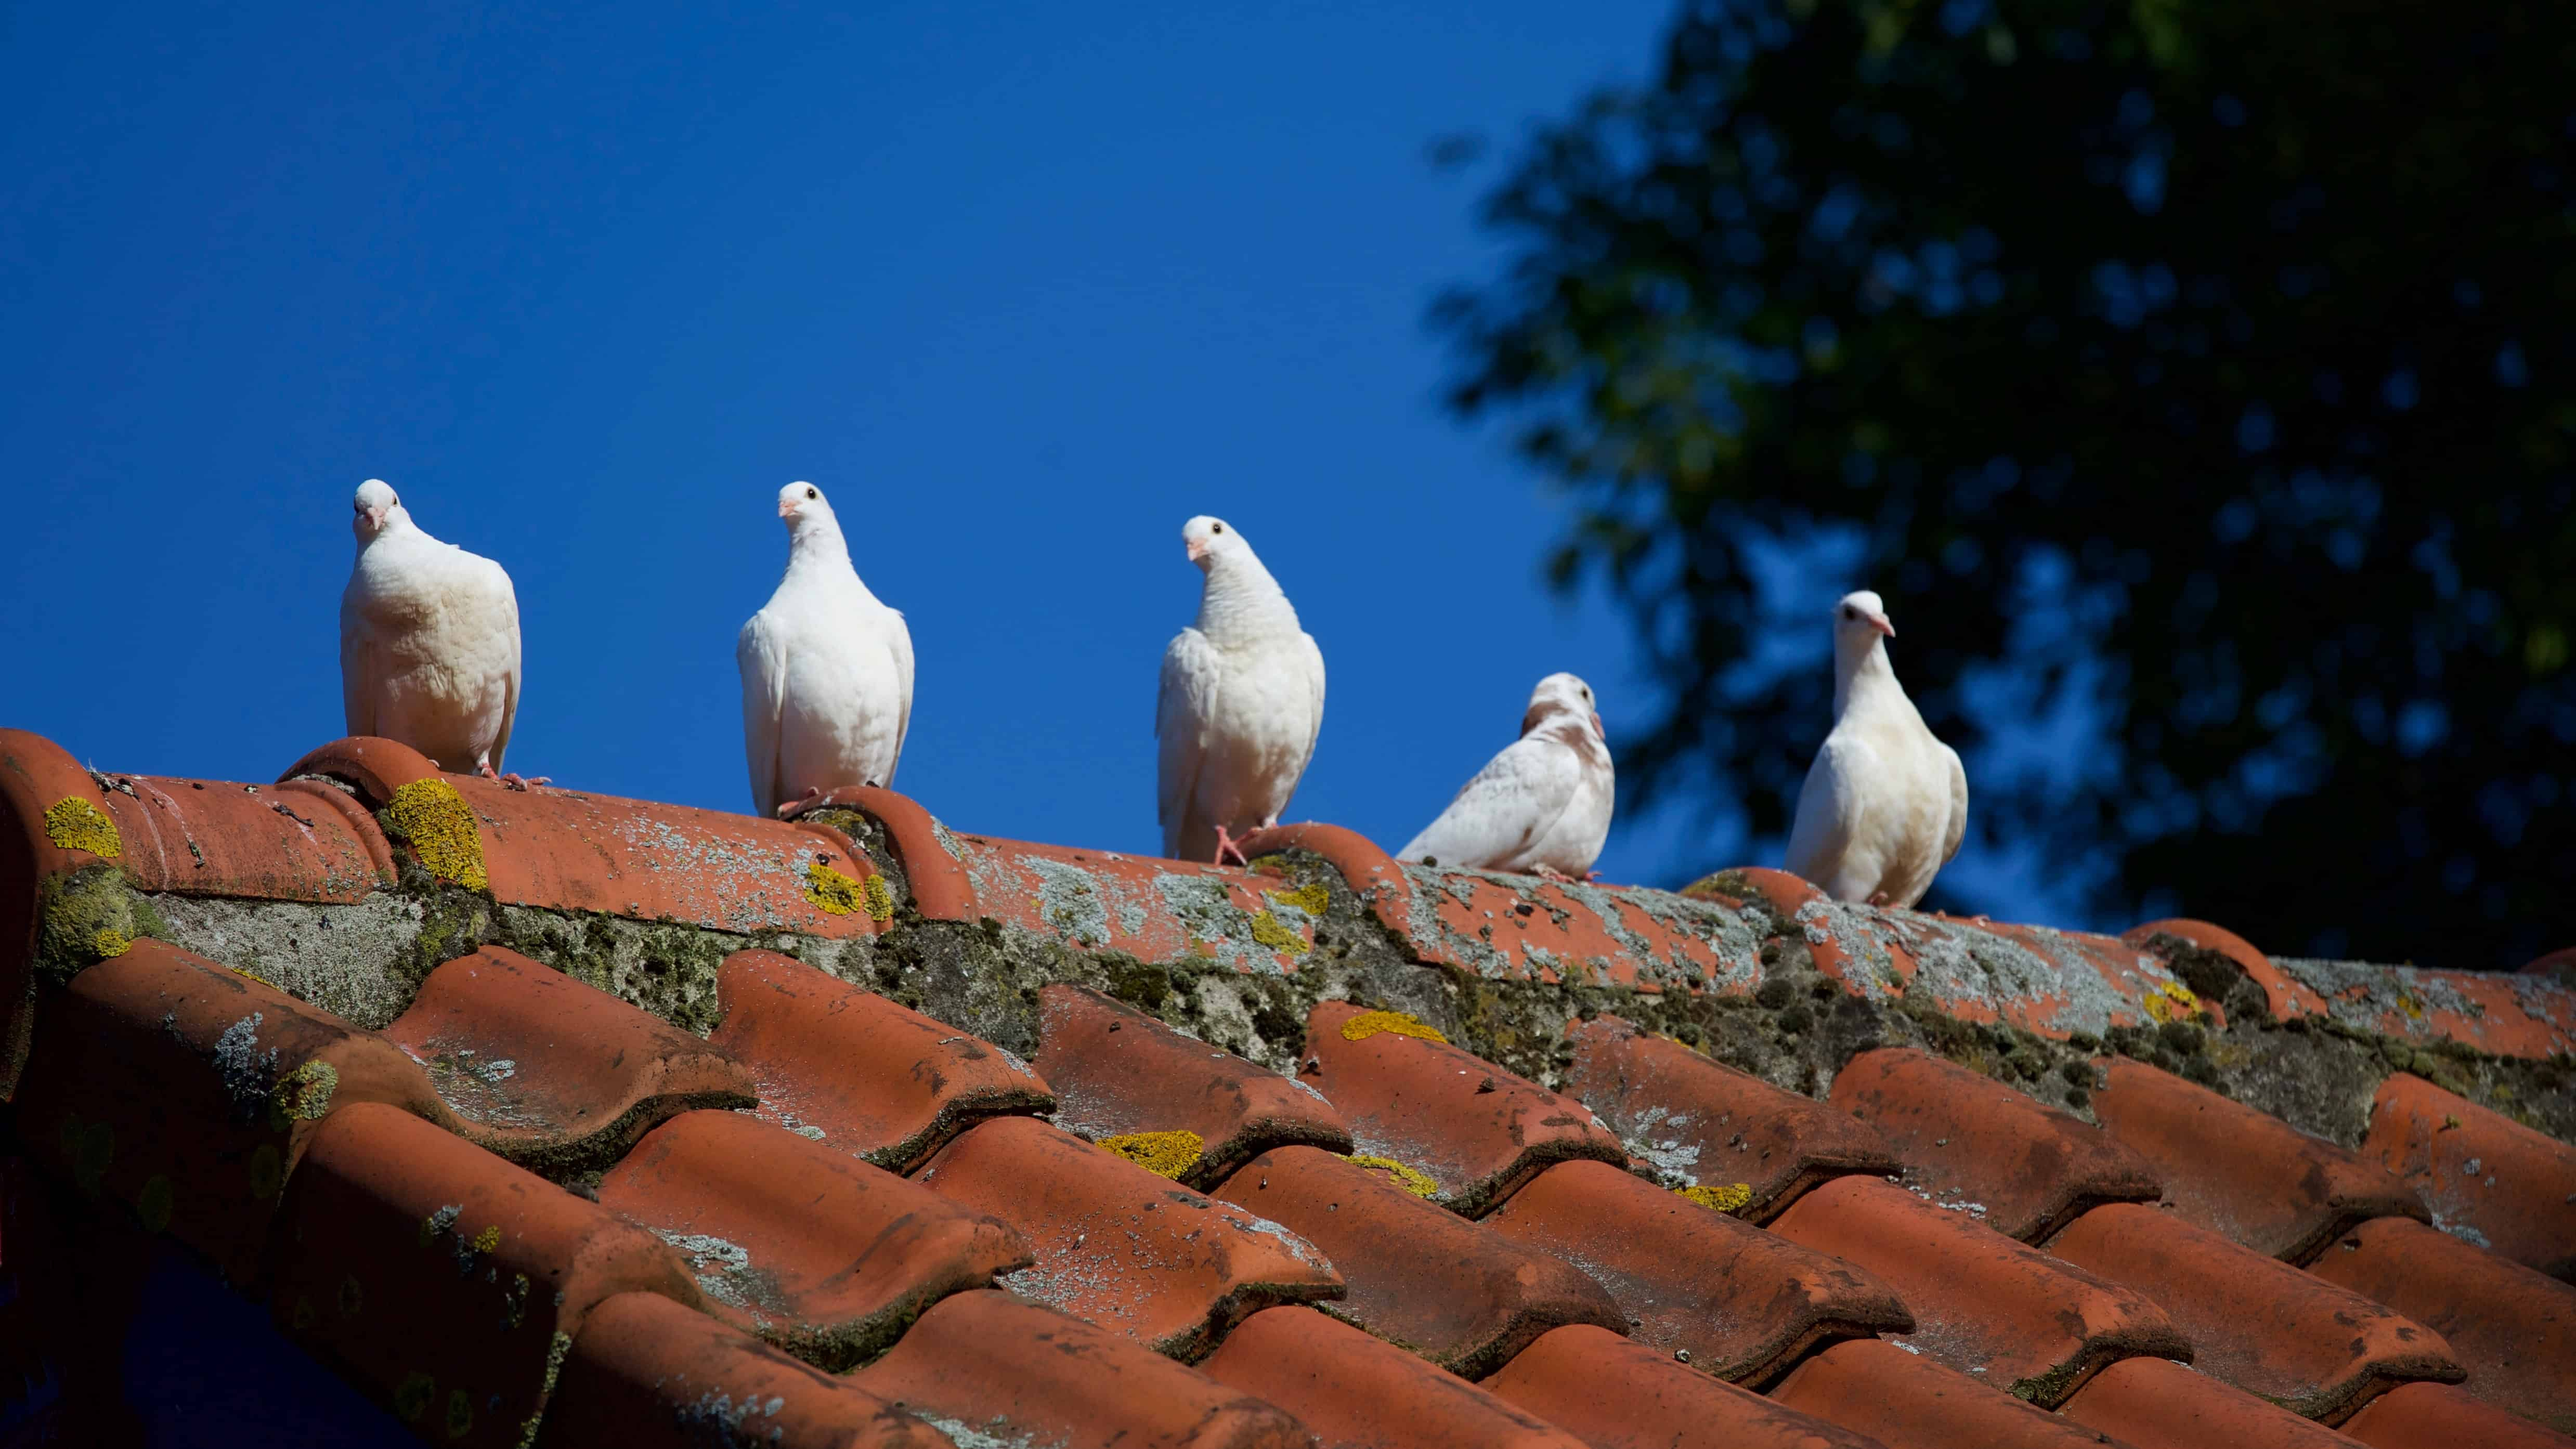 doves on an old, mossy roof